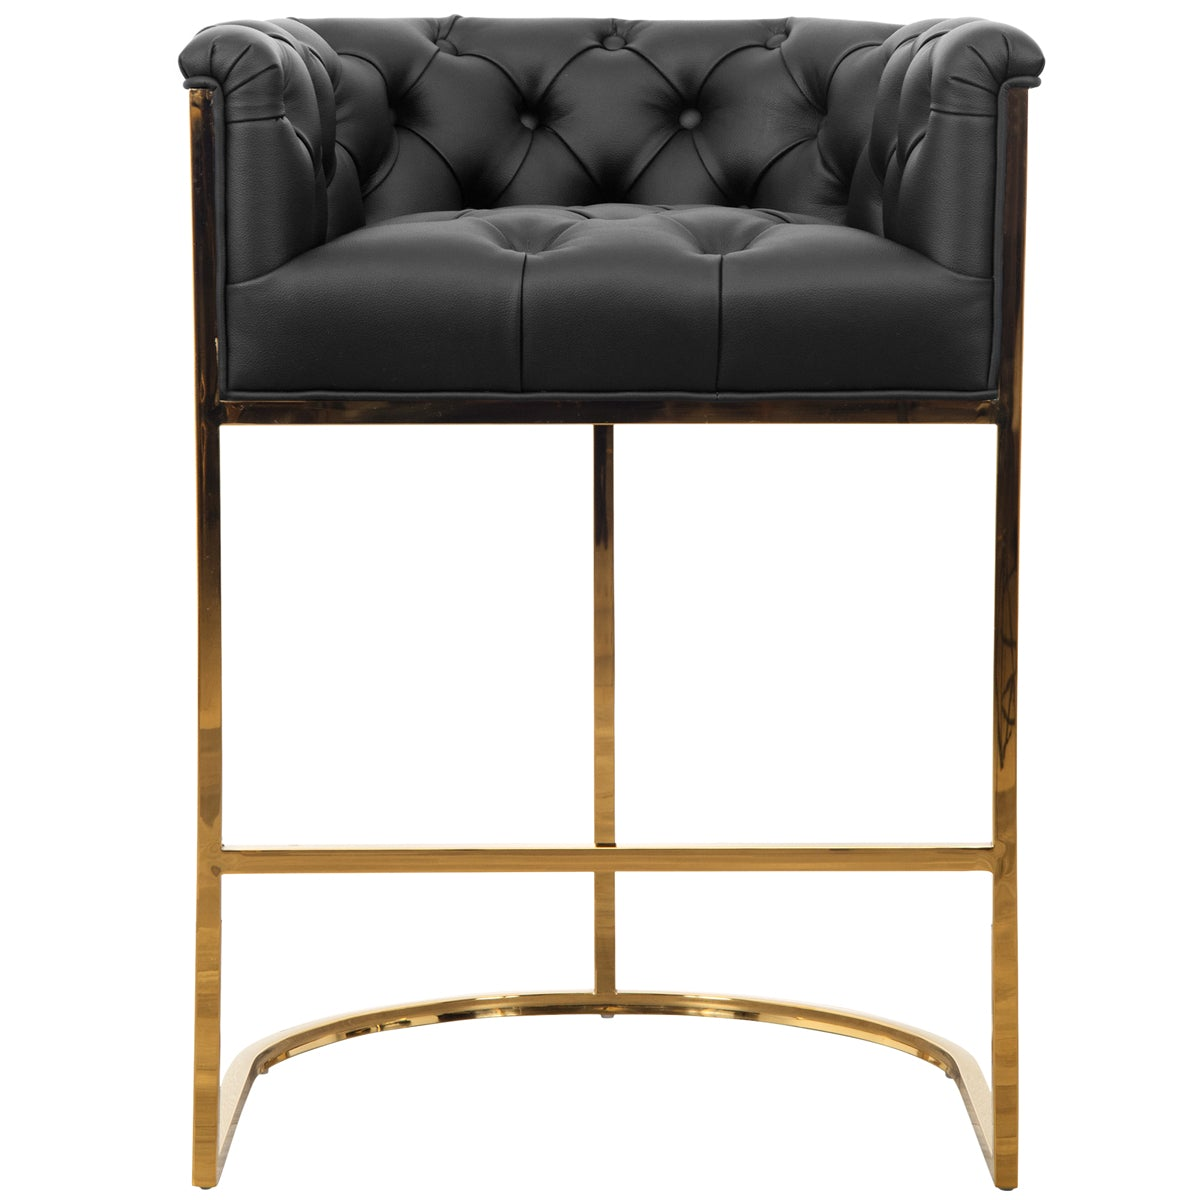 Corfu Bar and Counter Stool in Faux Leather and Cowhide - ModShop1.com